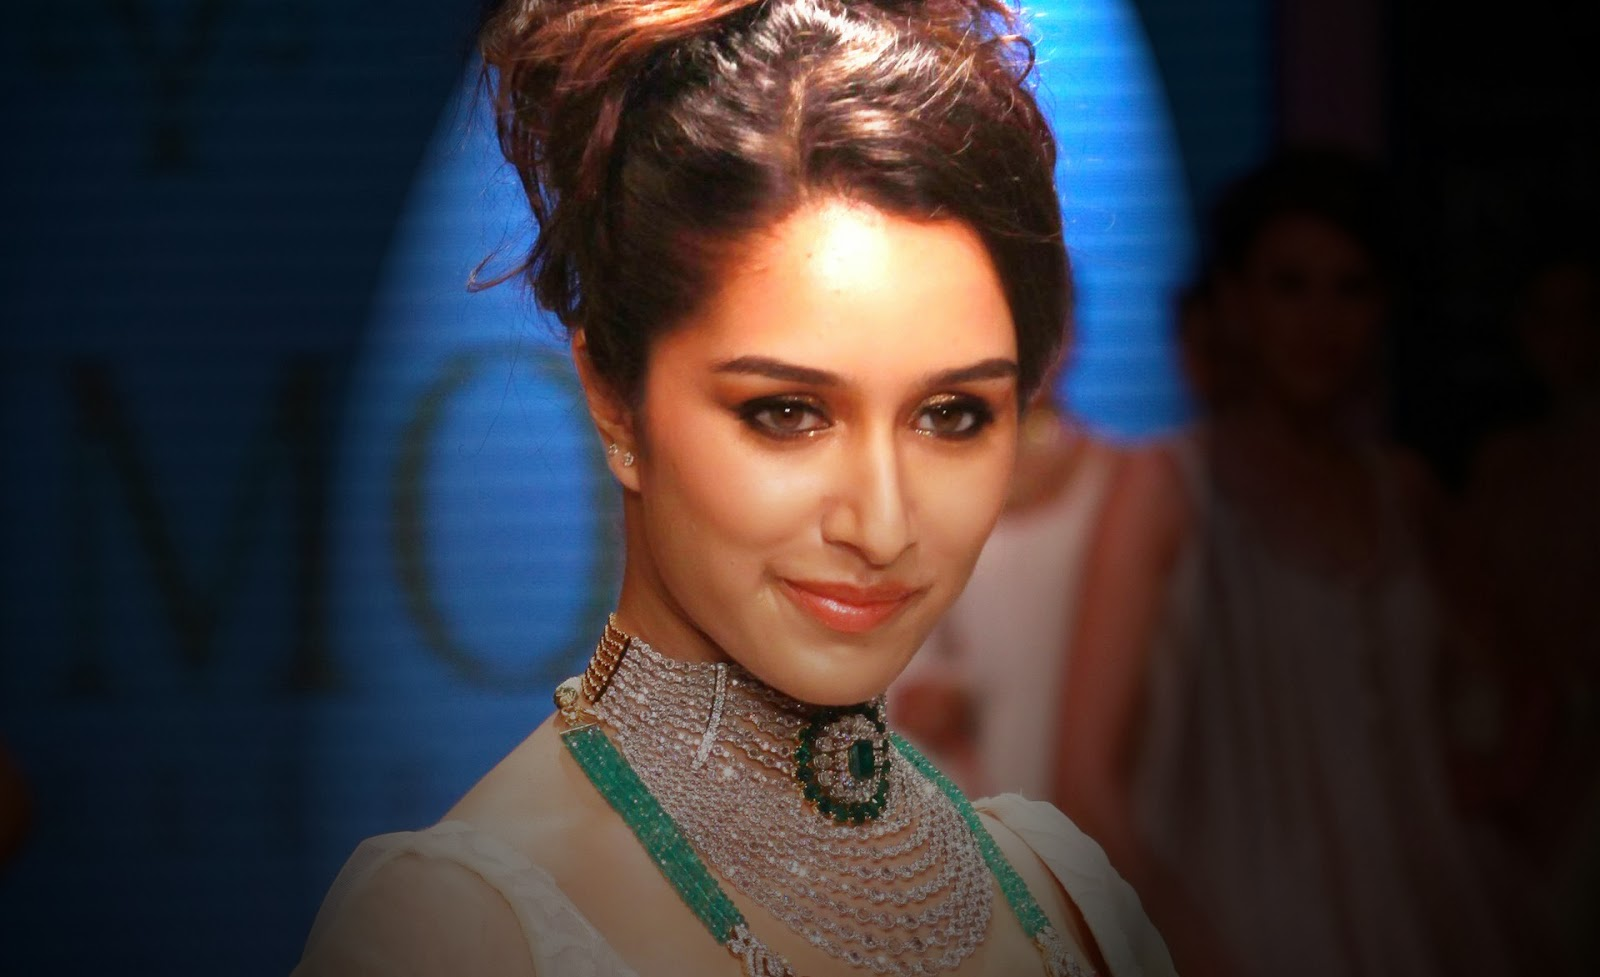 shraddha kapoor photo gallery | celebrity photos | celebrity pictures